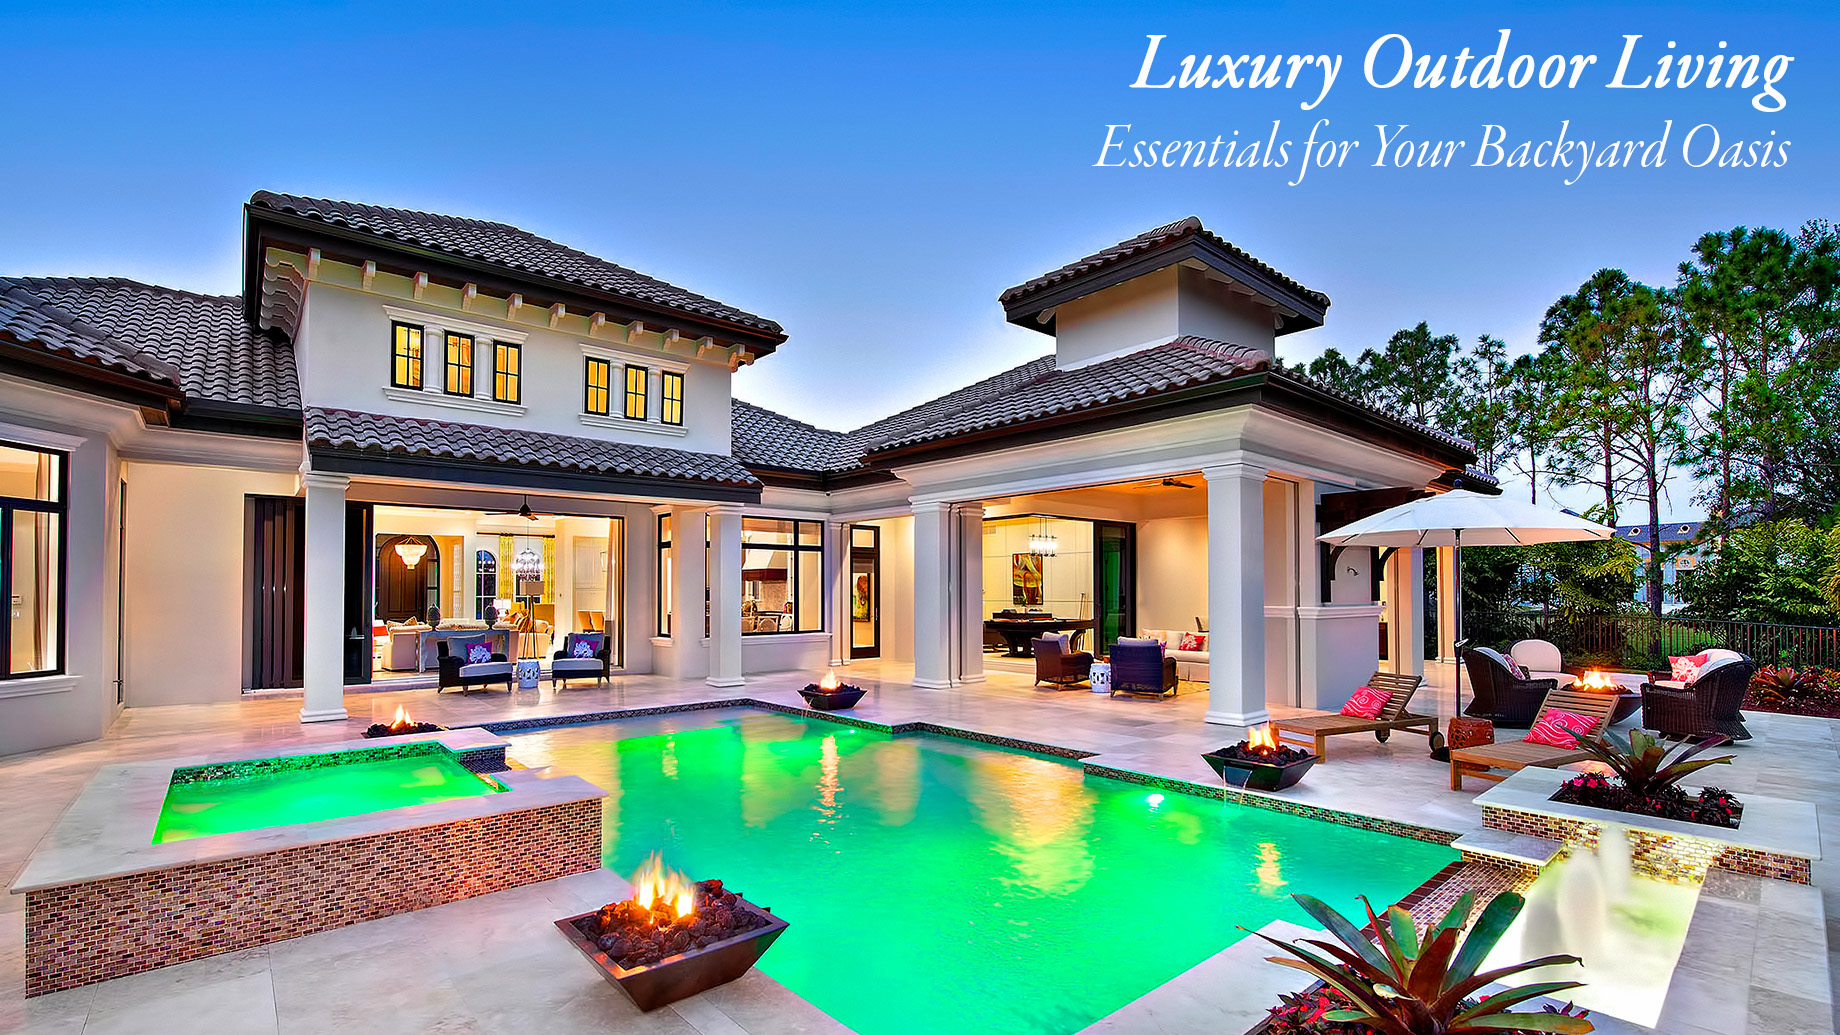 Luxury Outdoor Living - Essentials for Your Backyard Oasis